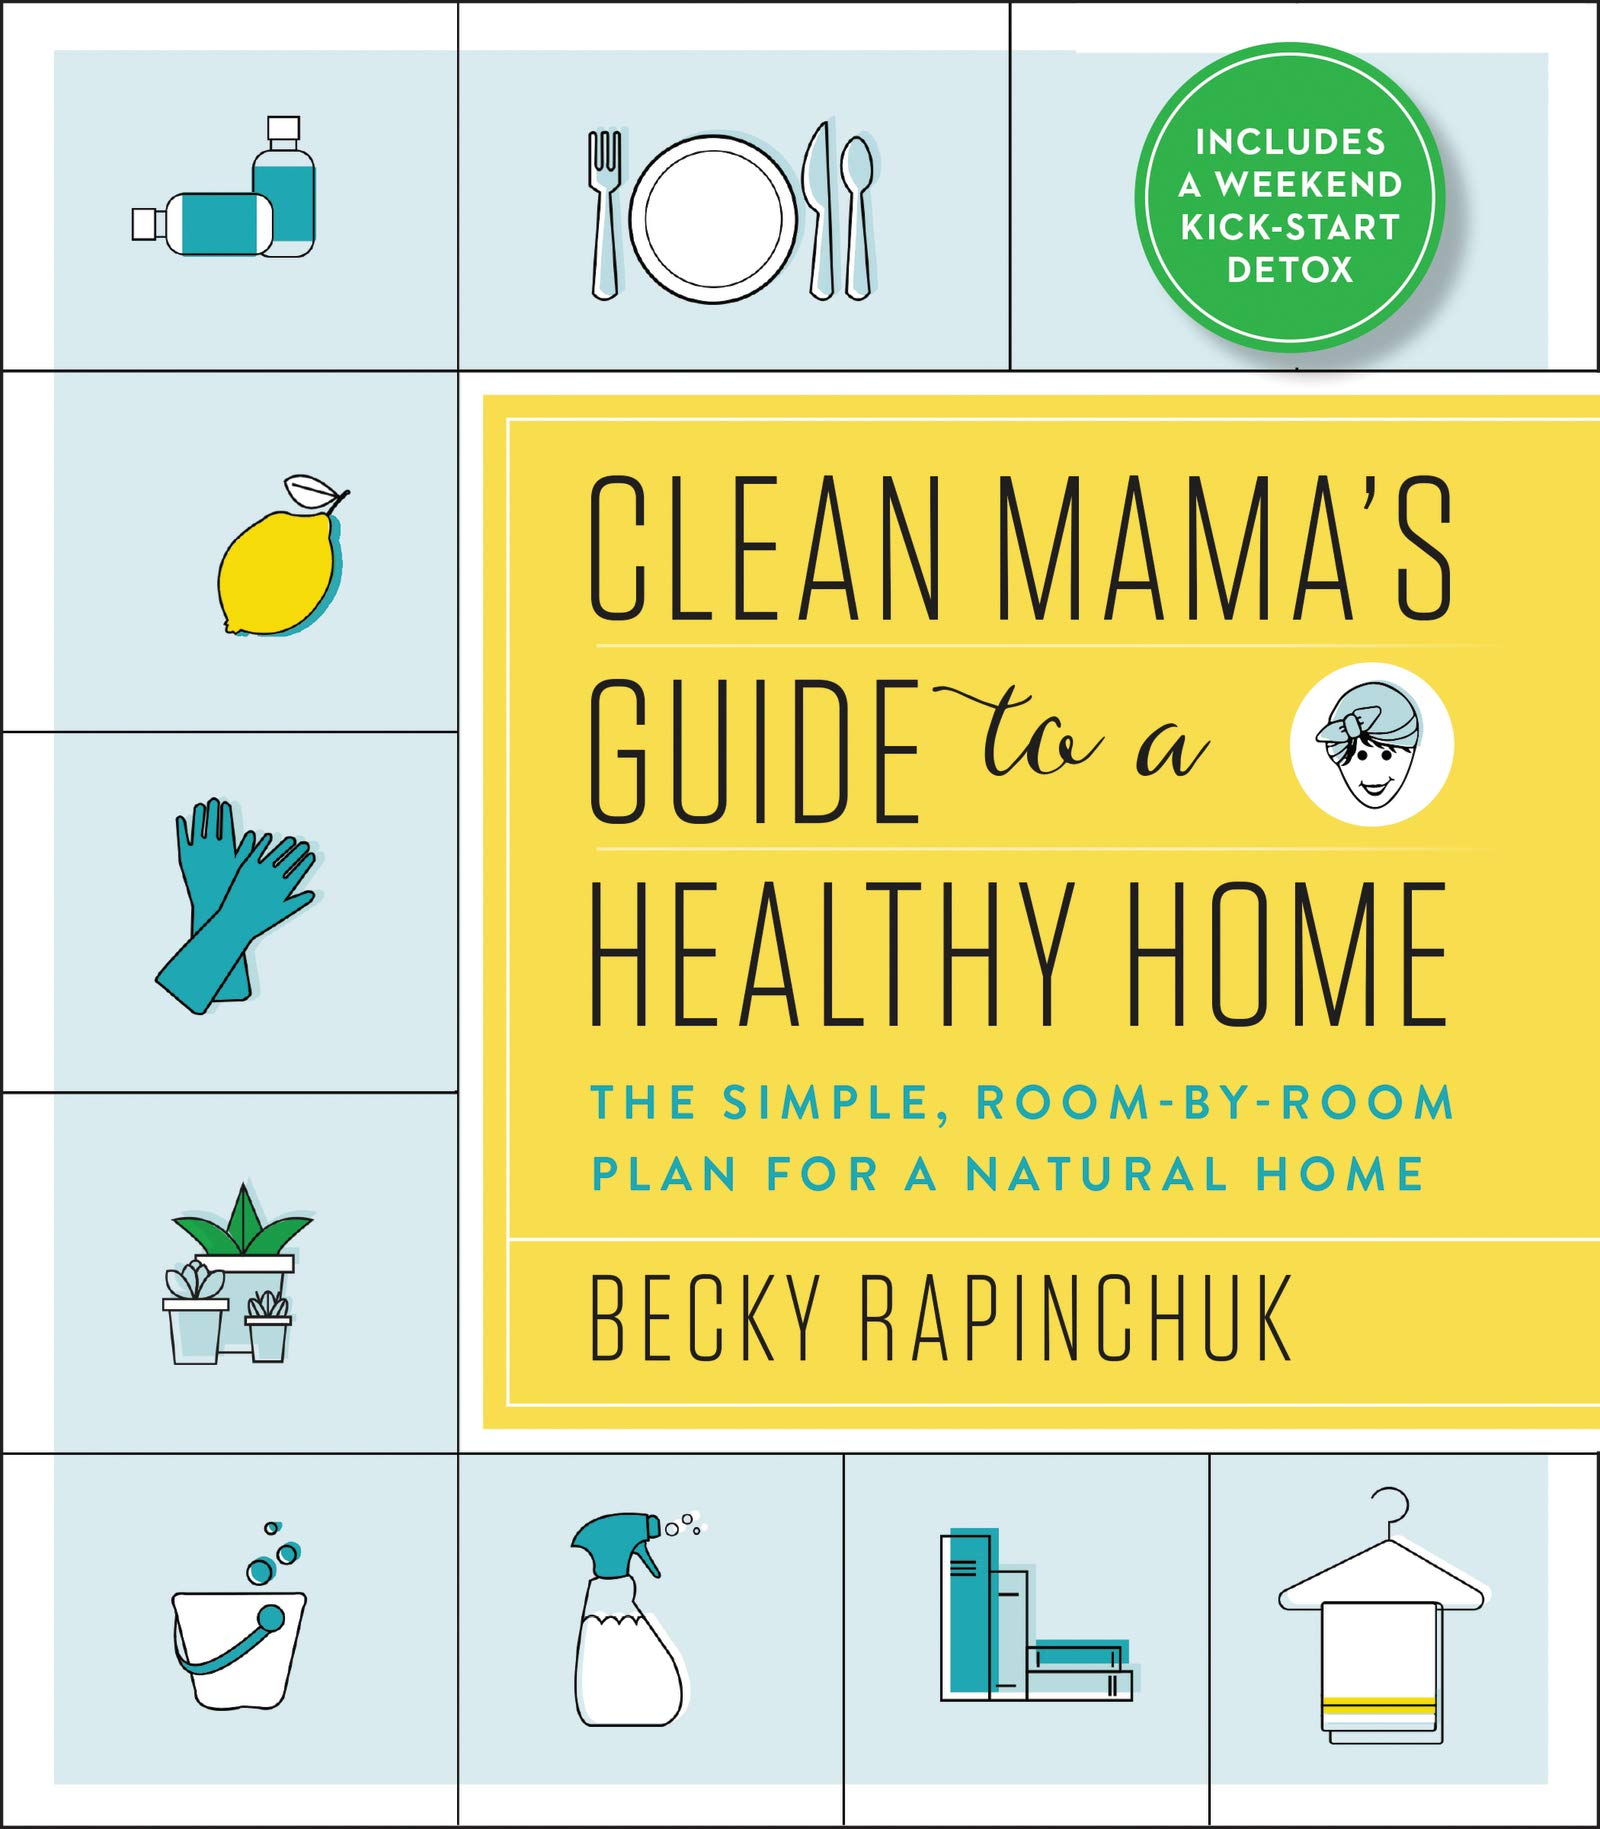 Clean Mamas Guide Healthy Room product image